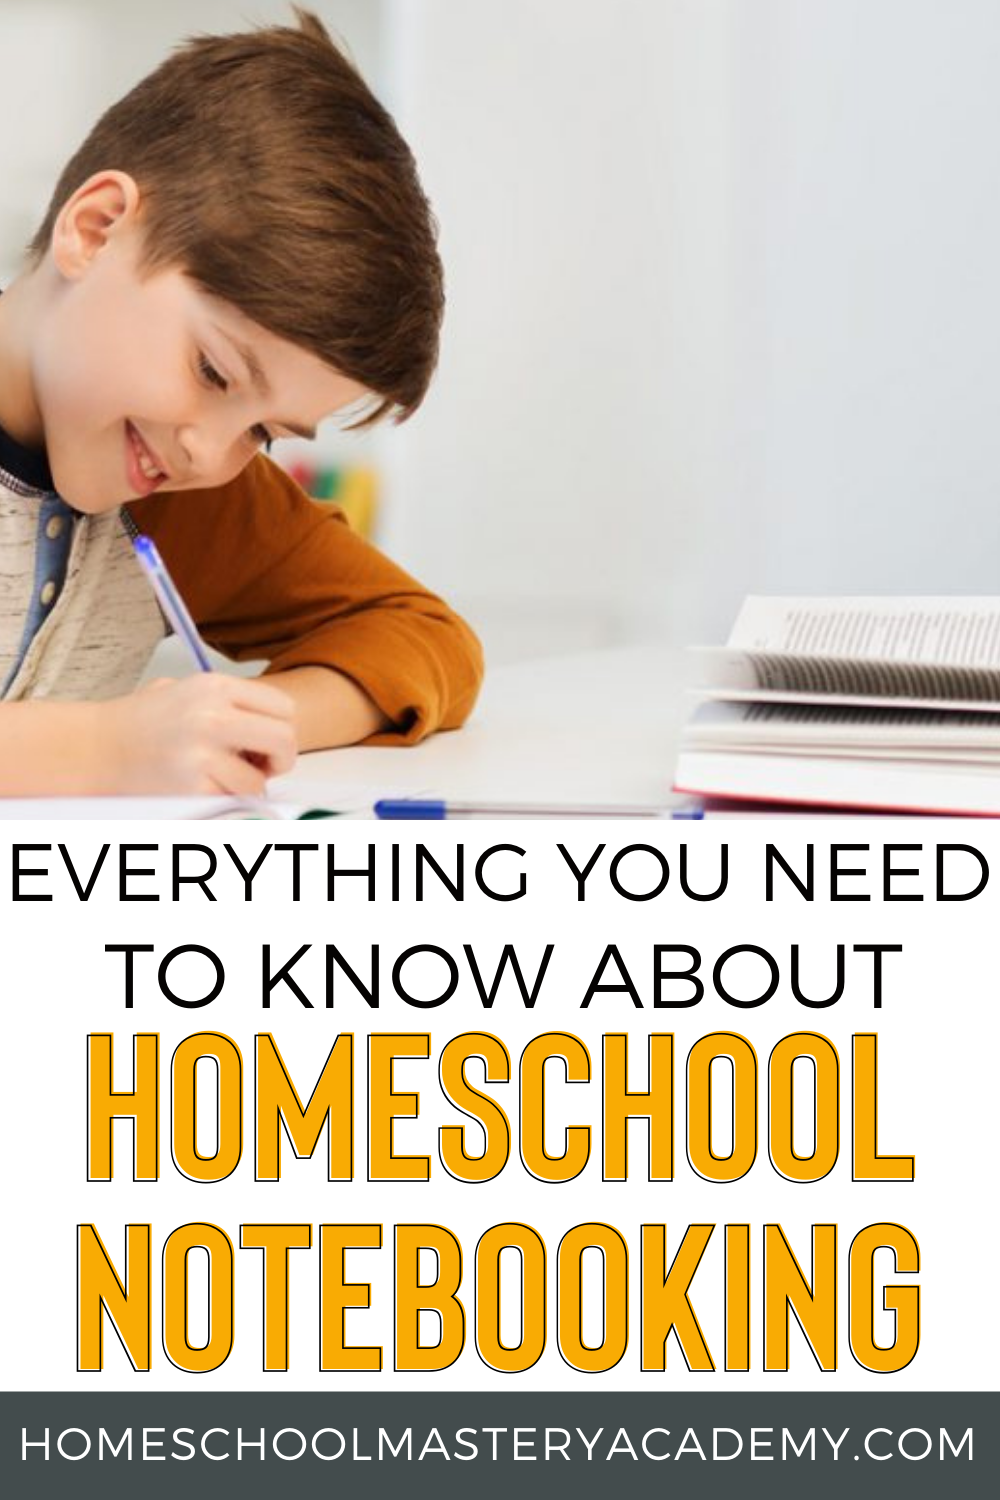 Not sure why or how to incorporate homeschool notebooking? We can help you! #homeschool #homeschoolnotebooking #notebooking